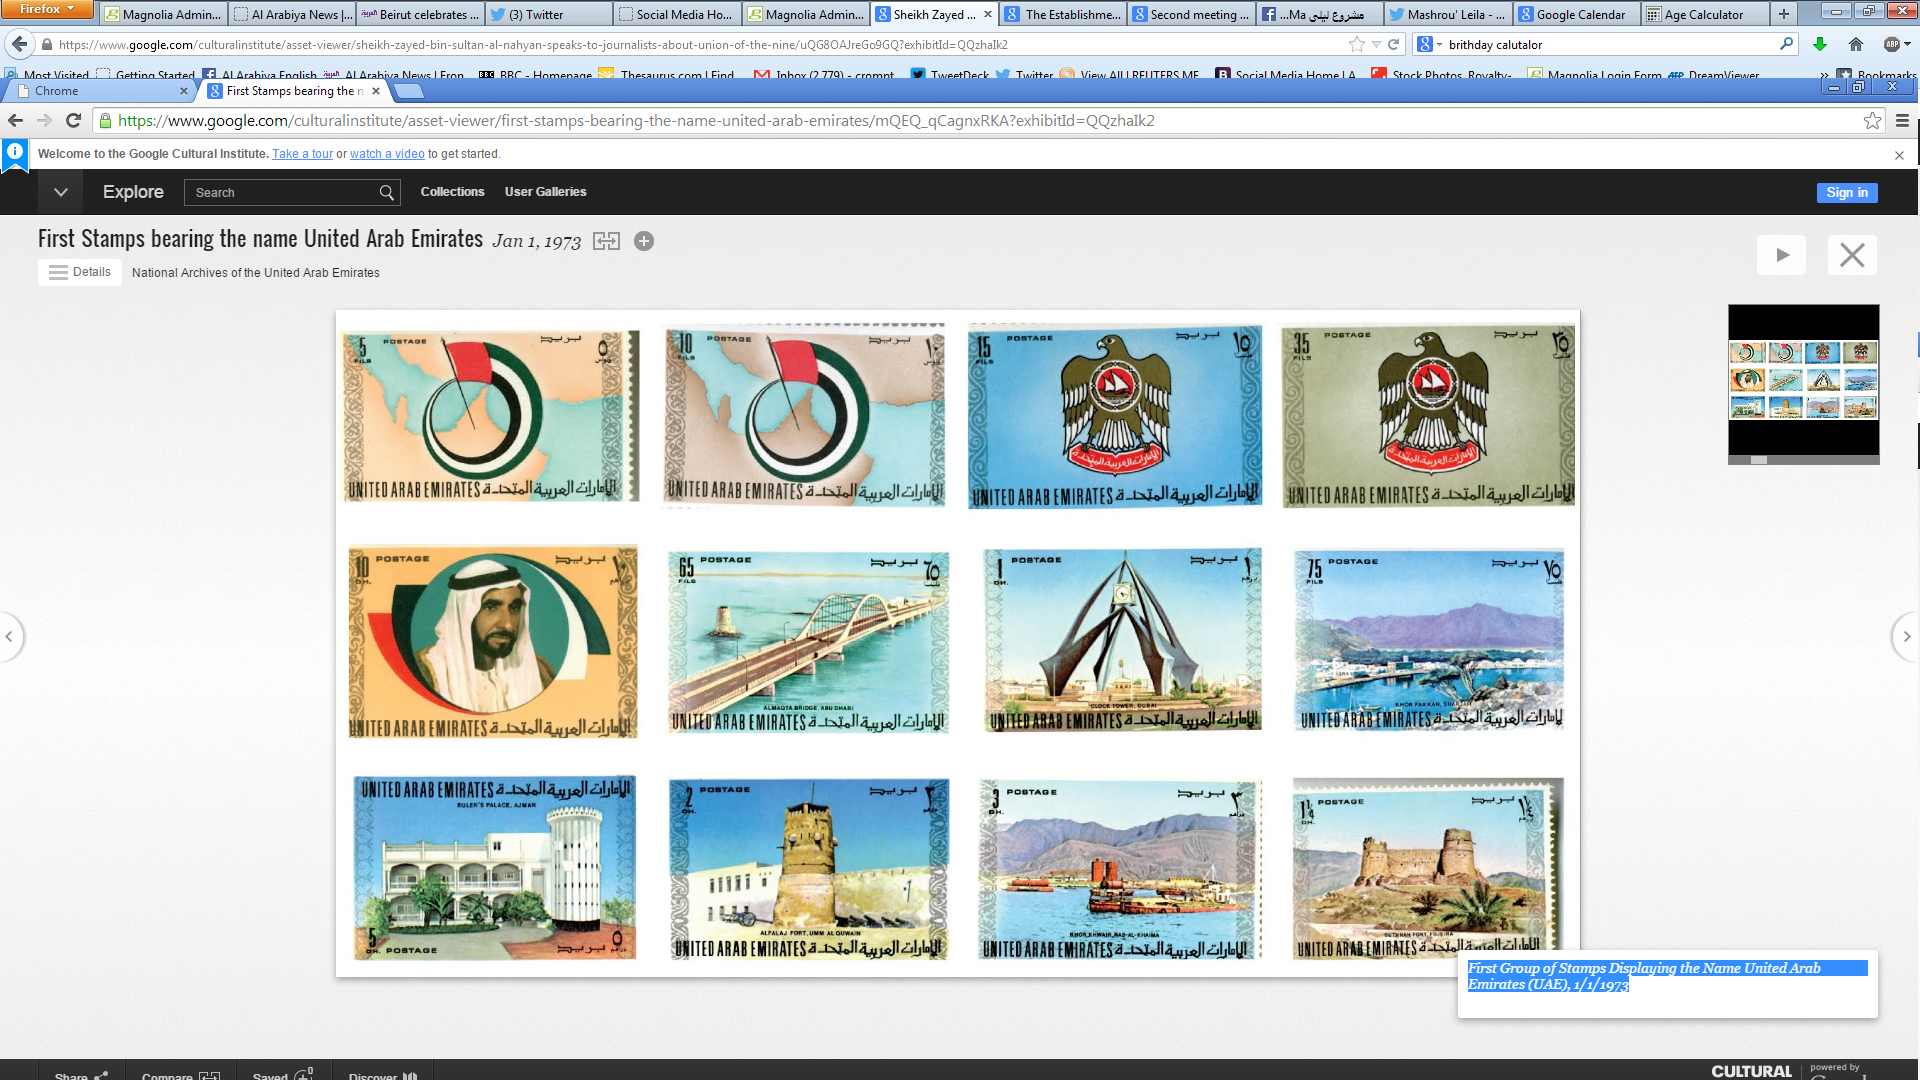 First group of stamps displaying the name of the United Arab Emirates, 1973. (